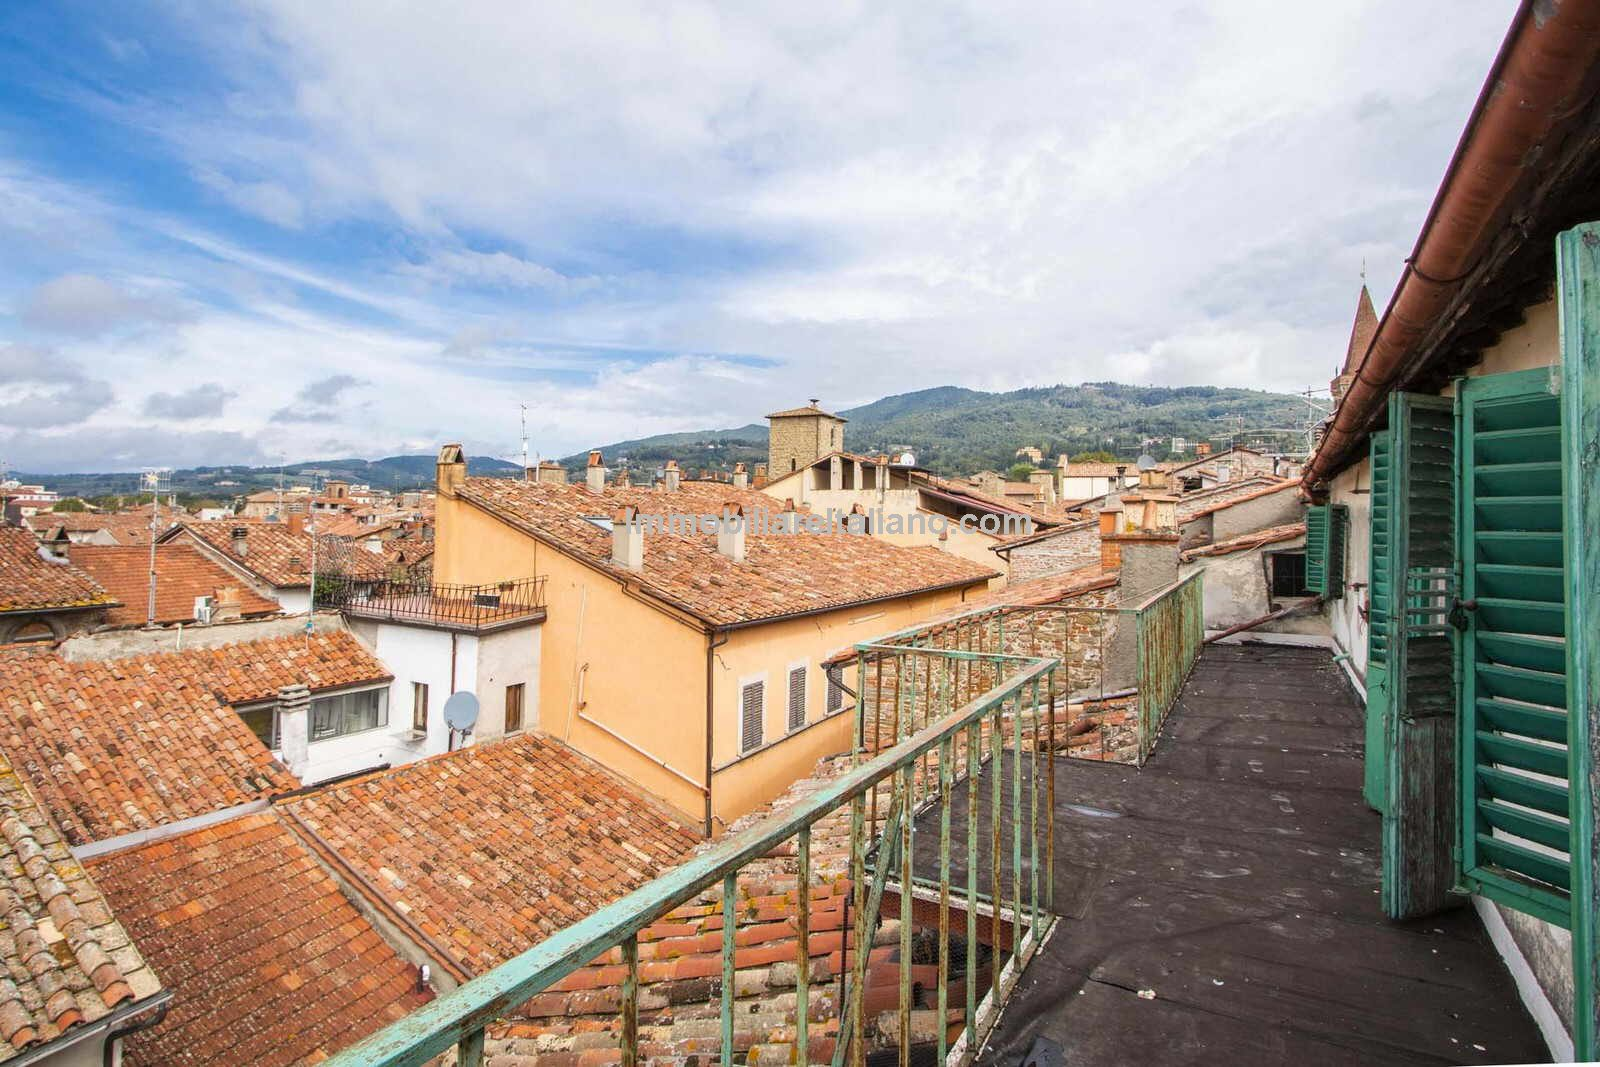 View from apartment over Sansepolcro rooftops